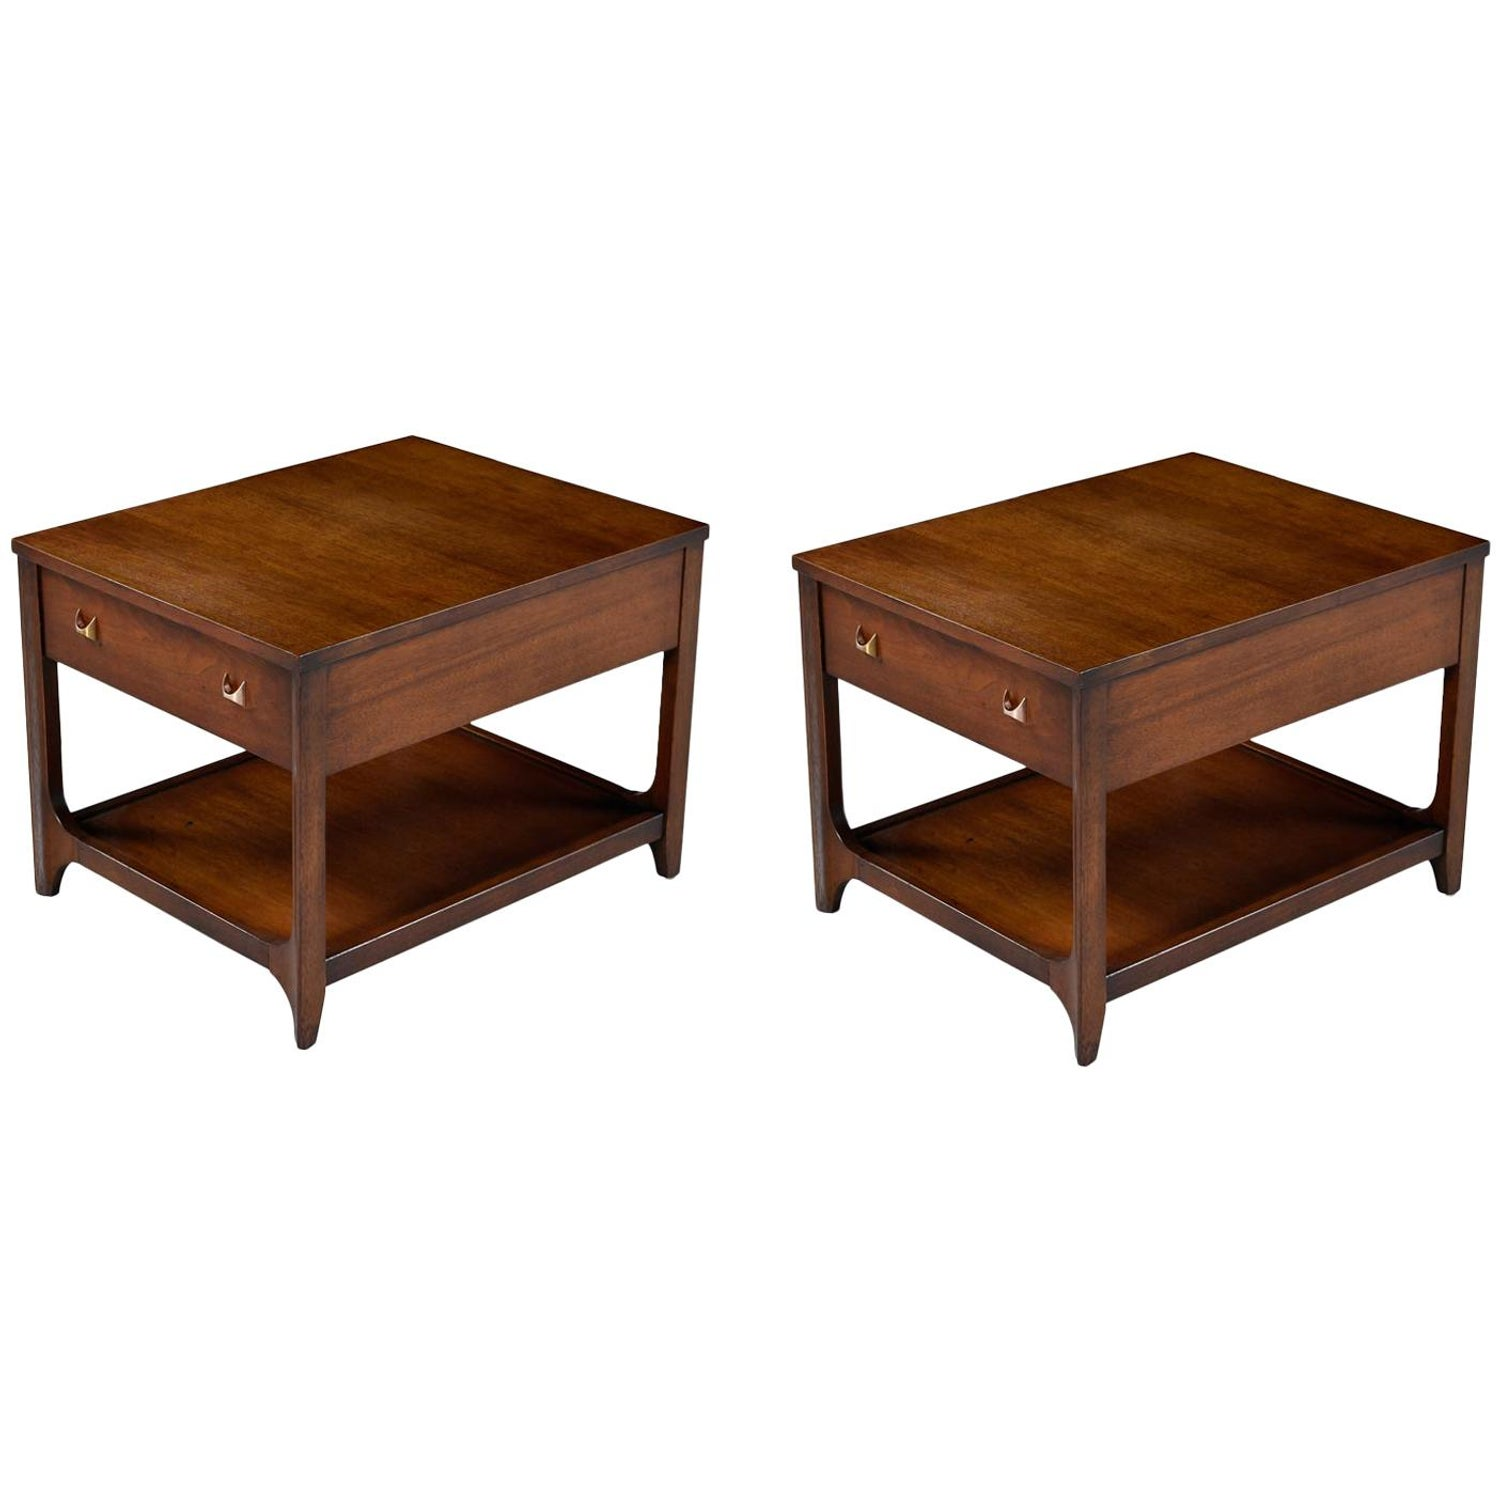 broyhill brasilia nightstand bedside end tables walnut chairside master used for west elm coat rack resin wicker patio coffee table jason lazy boy recliner chairs liberty